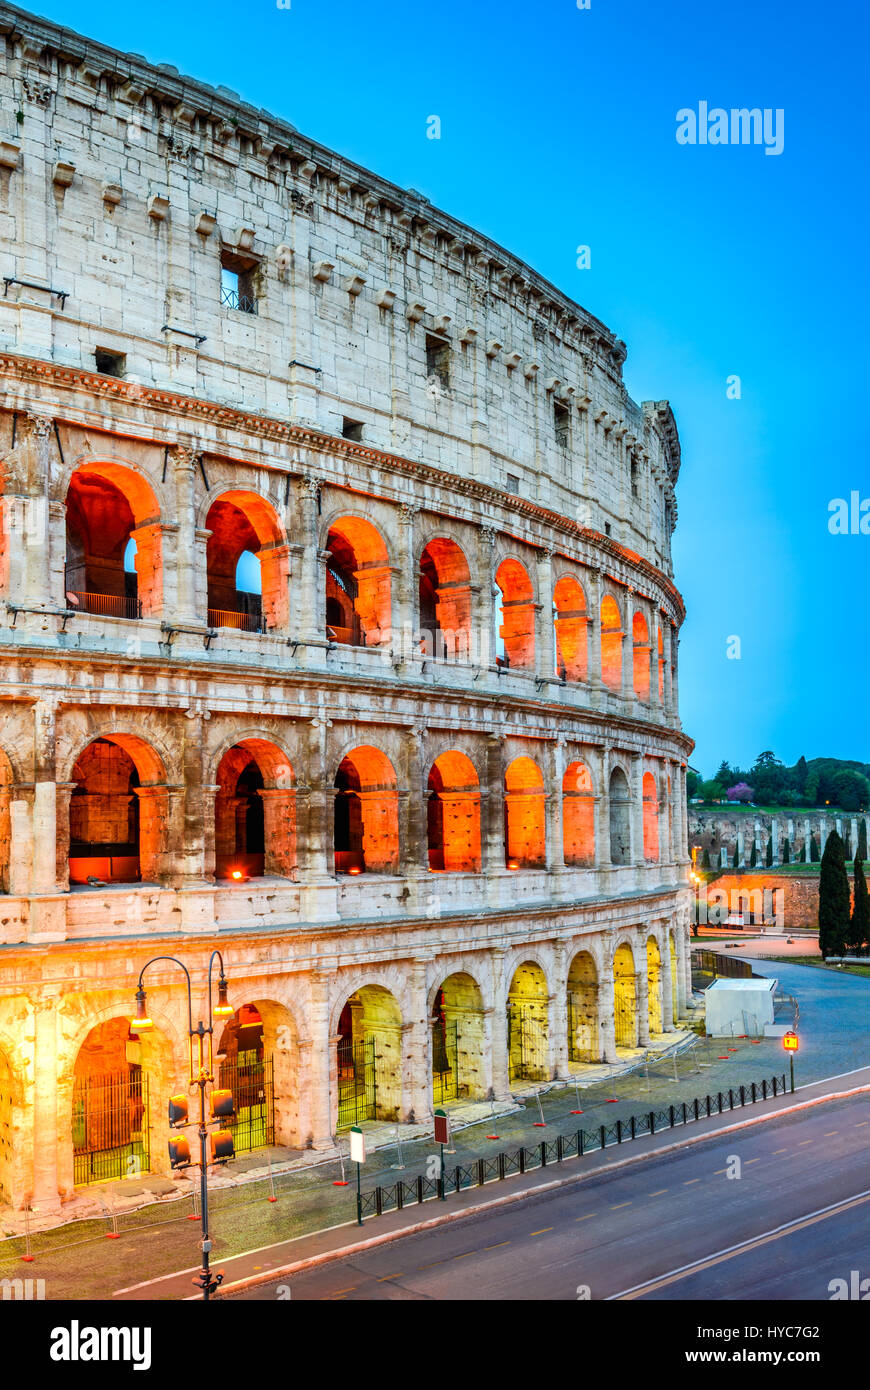 Rome, Italy. Colosseum, Coliseum or Coloseo,  Flavian Amphitheatre largest ever built symbol of ancient Roma city Stock Photo